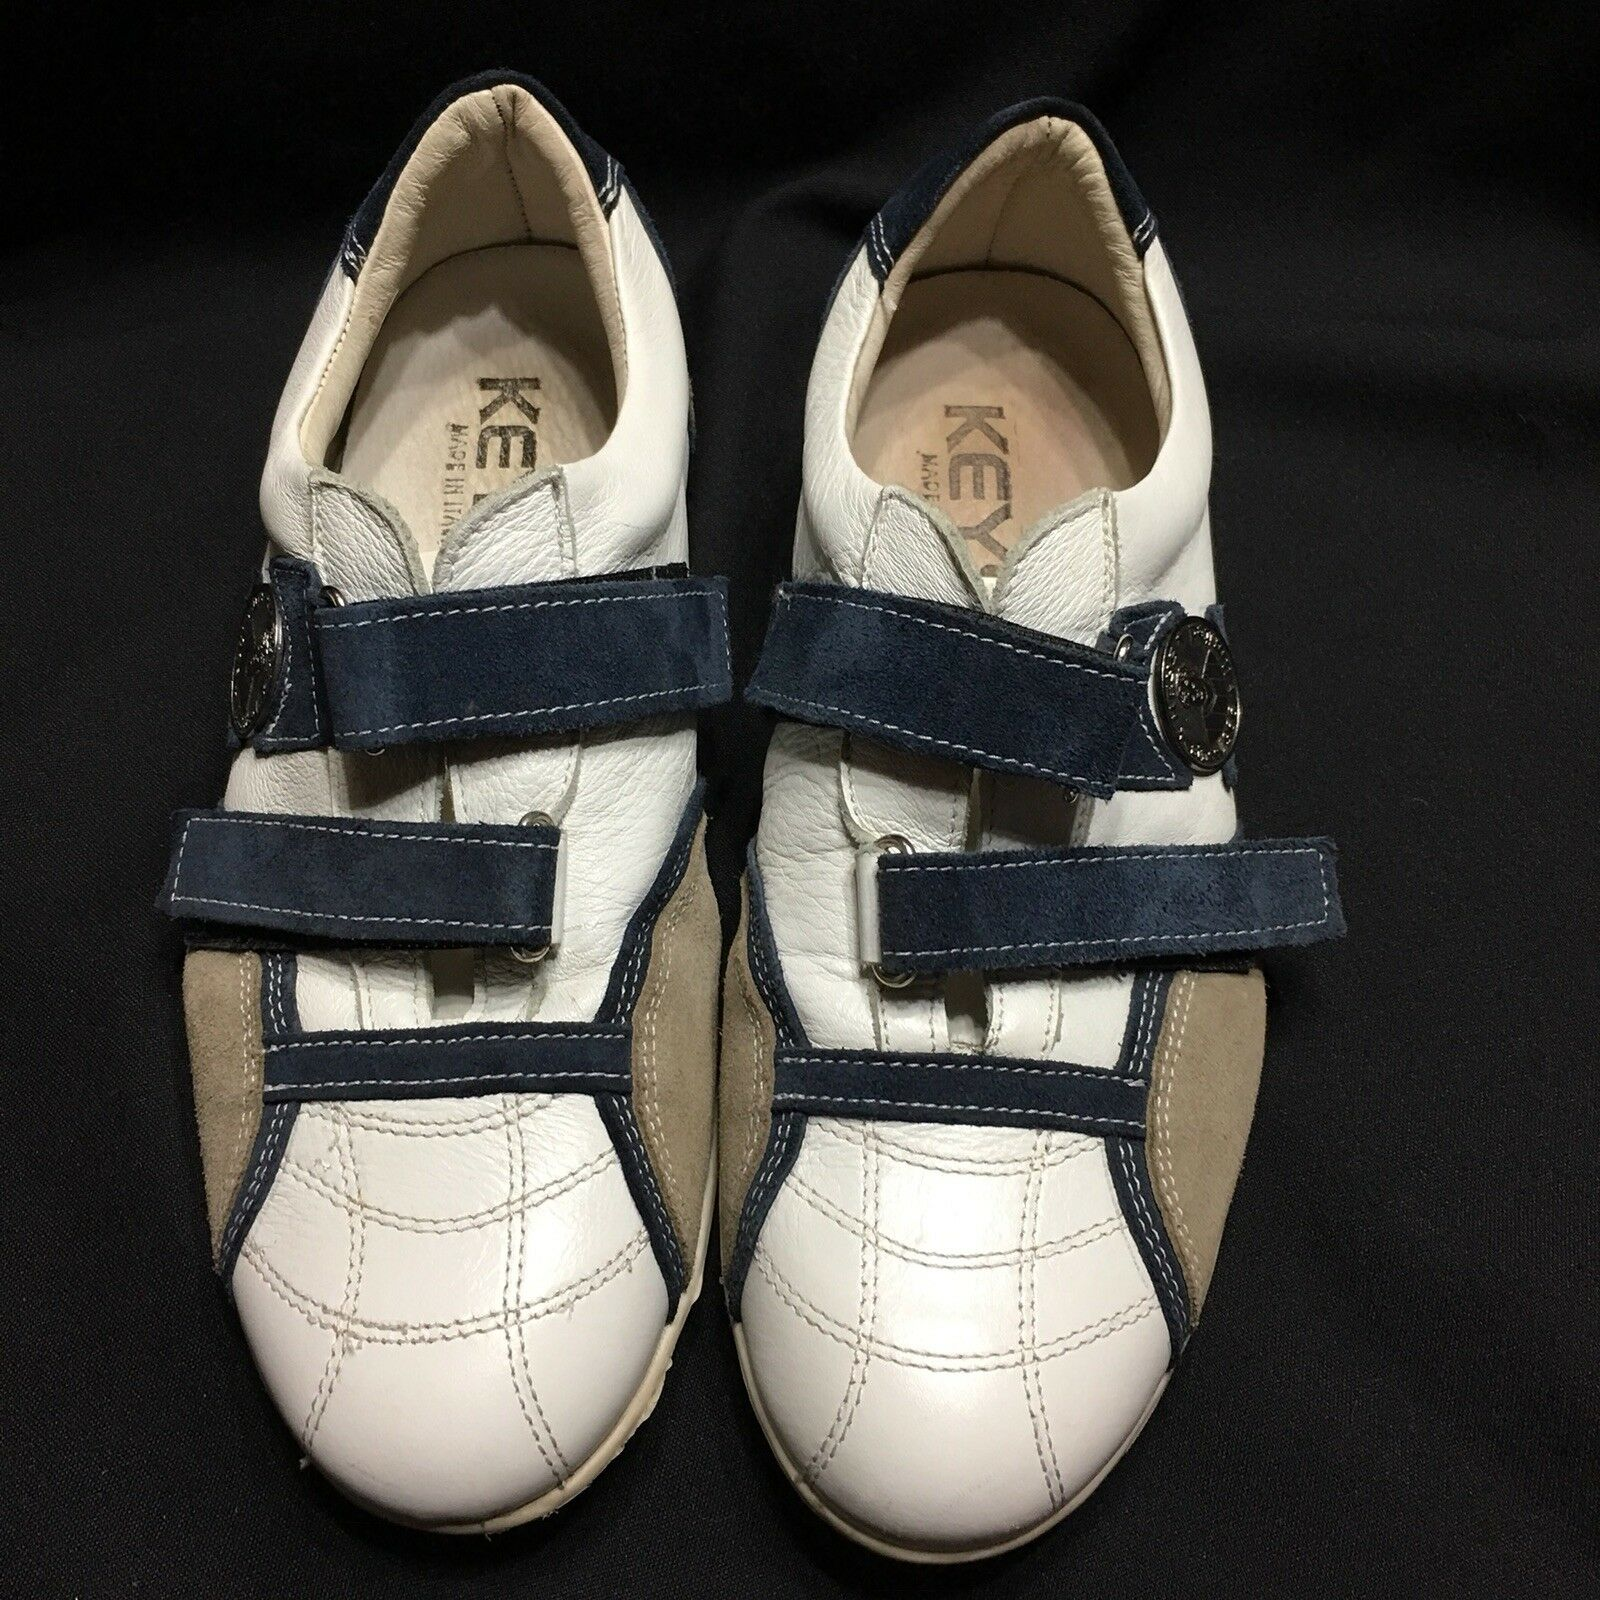 KEYS Italian Leather Womens Shoes Size 9 Made In Italy Hook and Loop